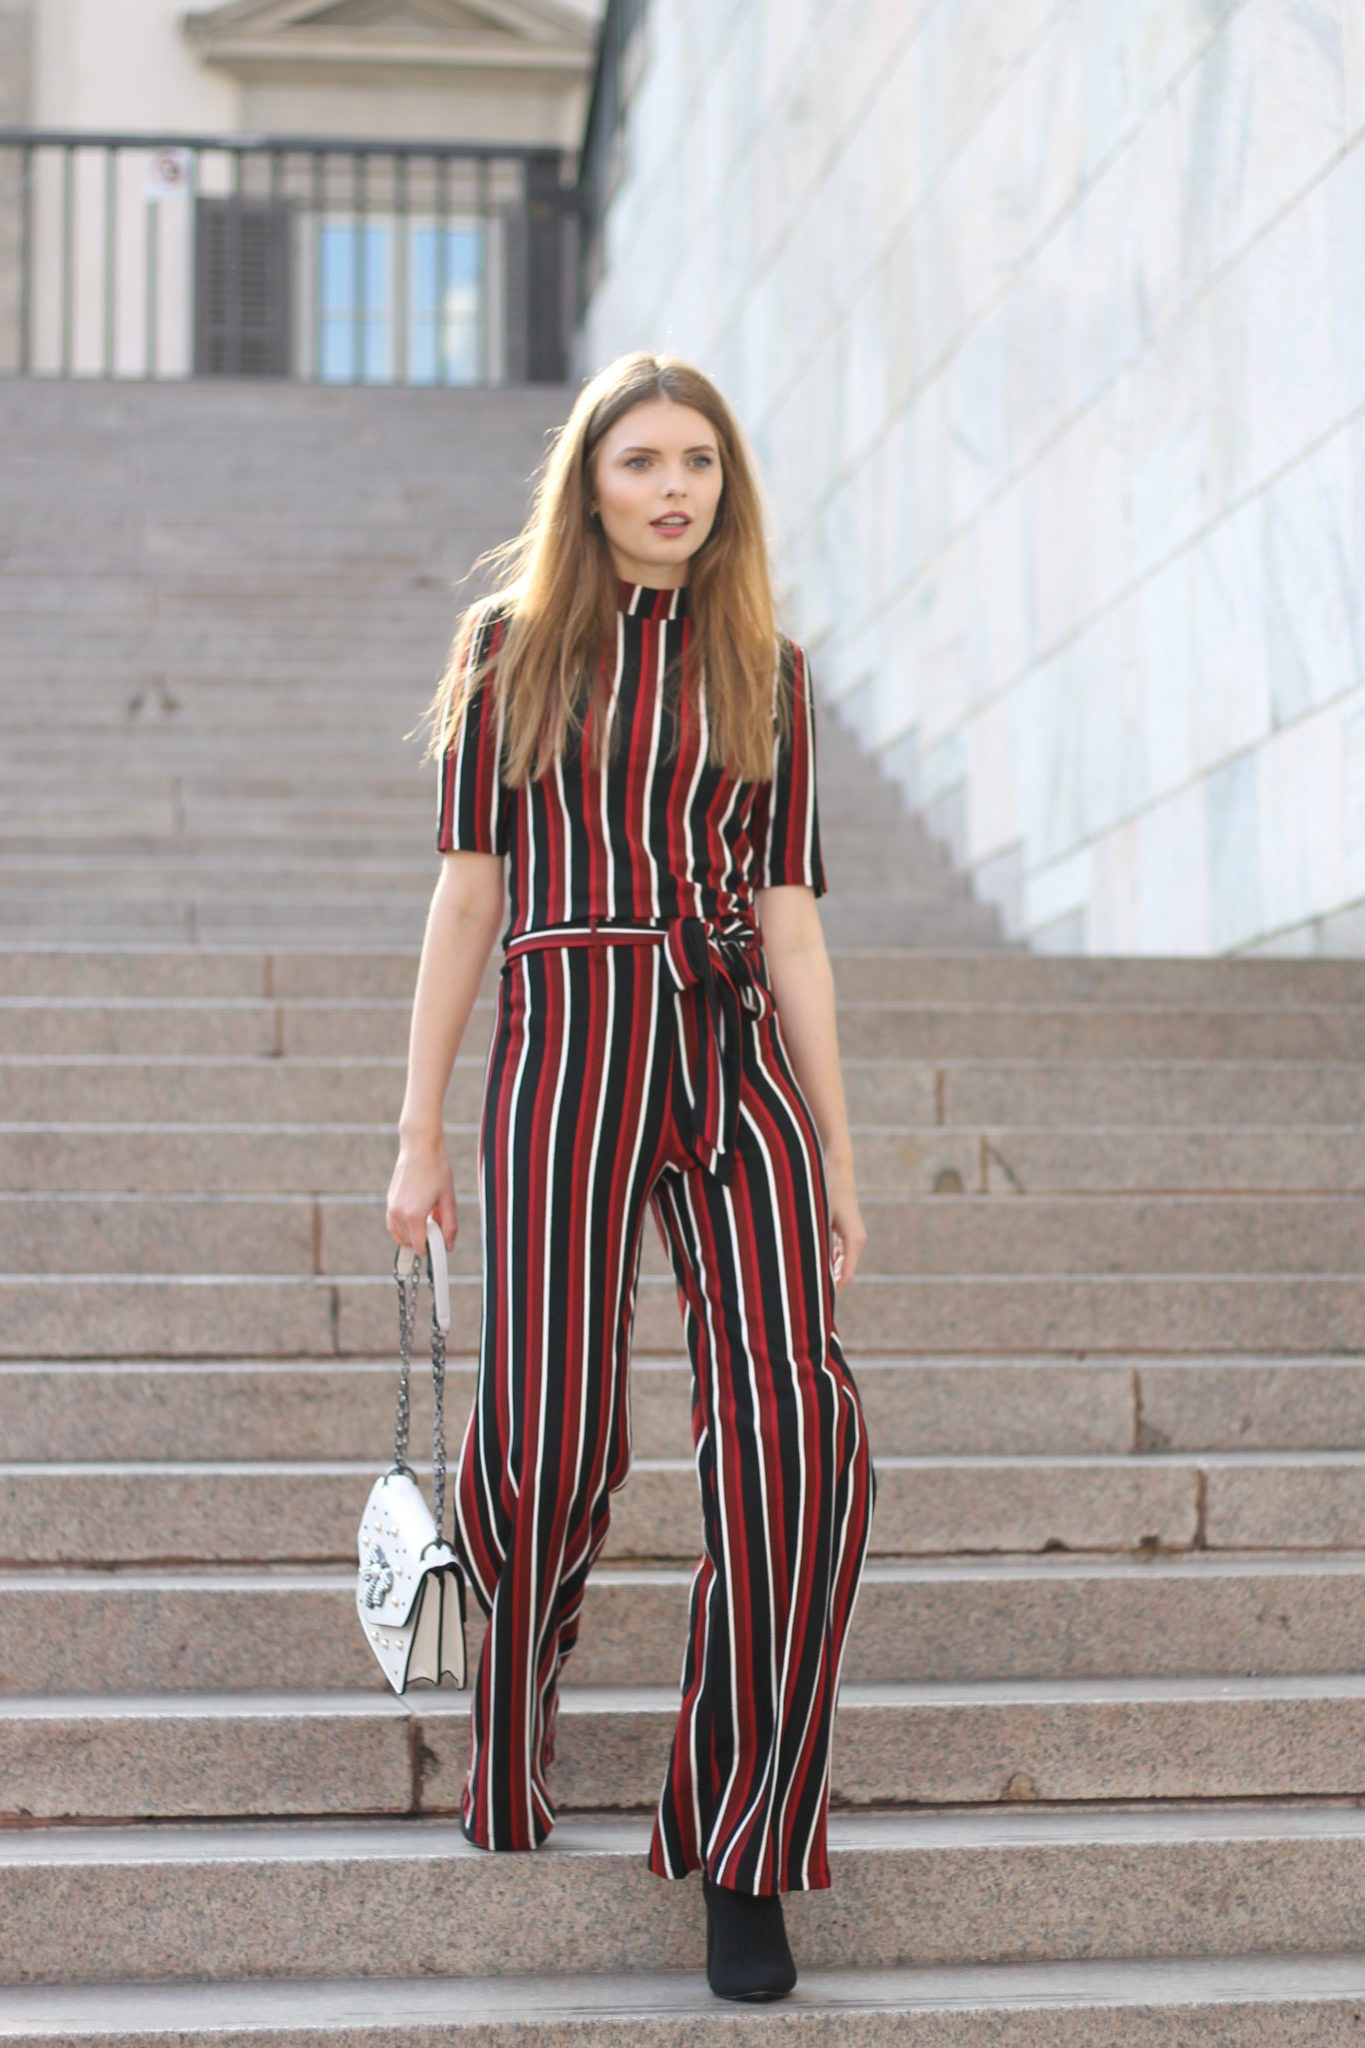 IMG 1724 e1519228618534 - BOLD STRIPED JUMPSUIT I MILAN